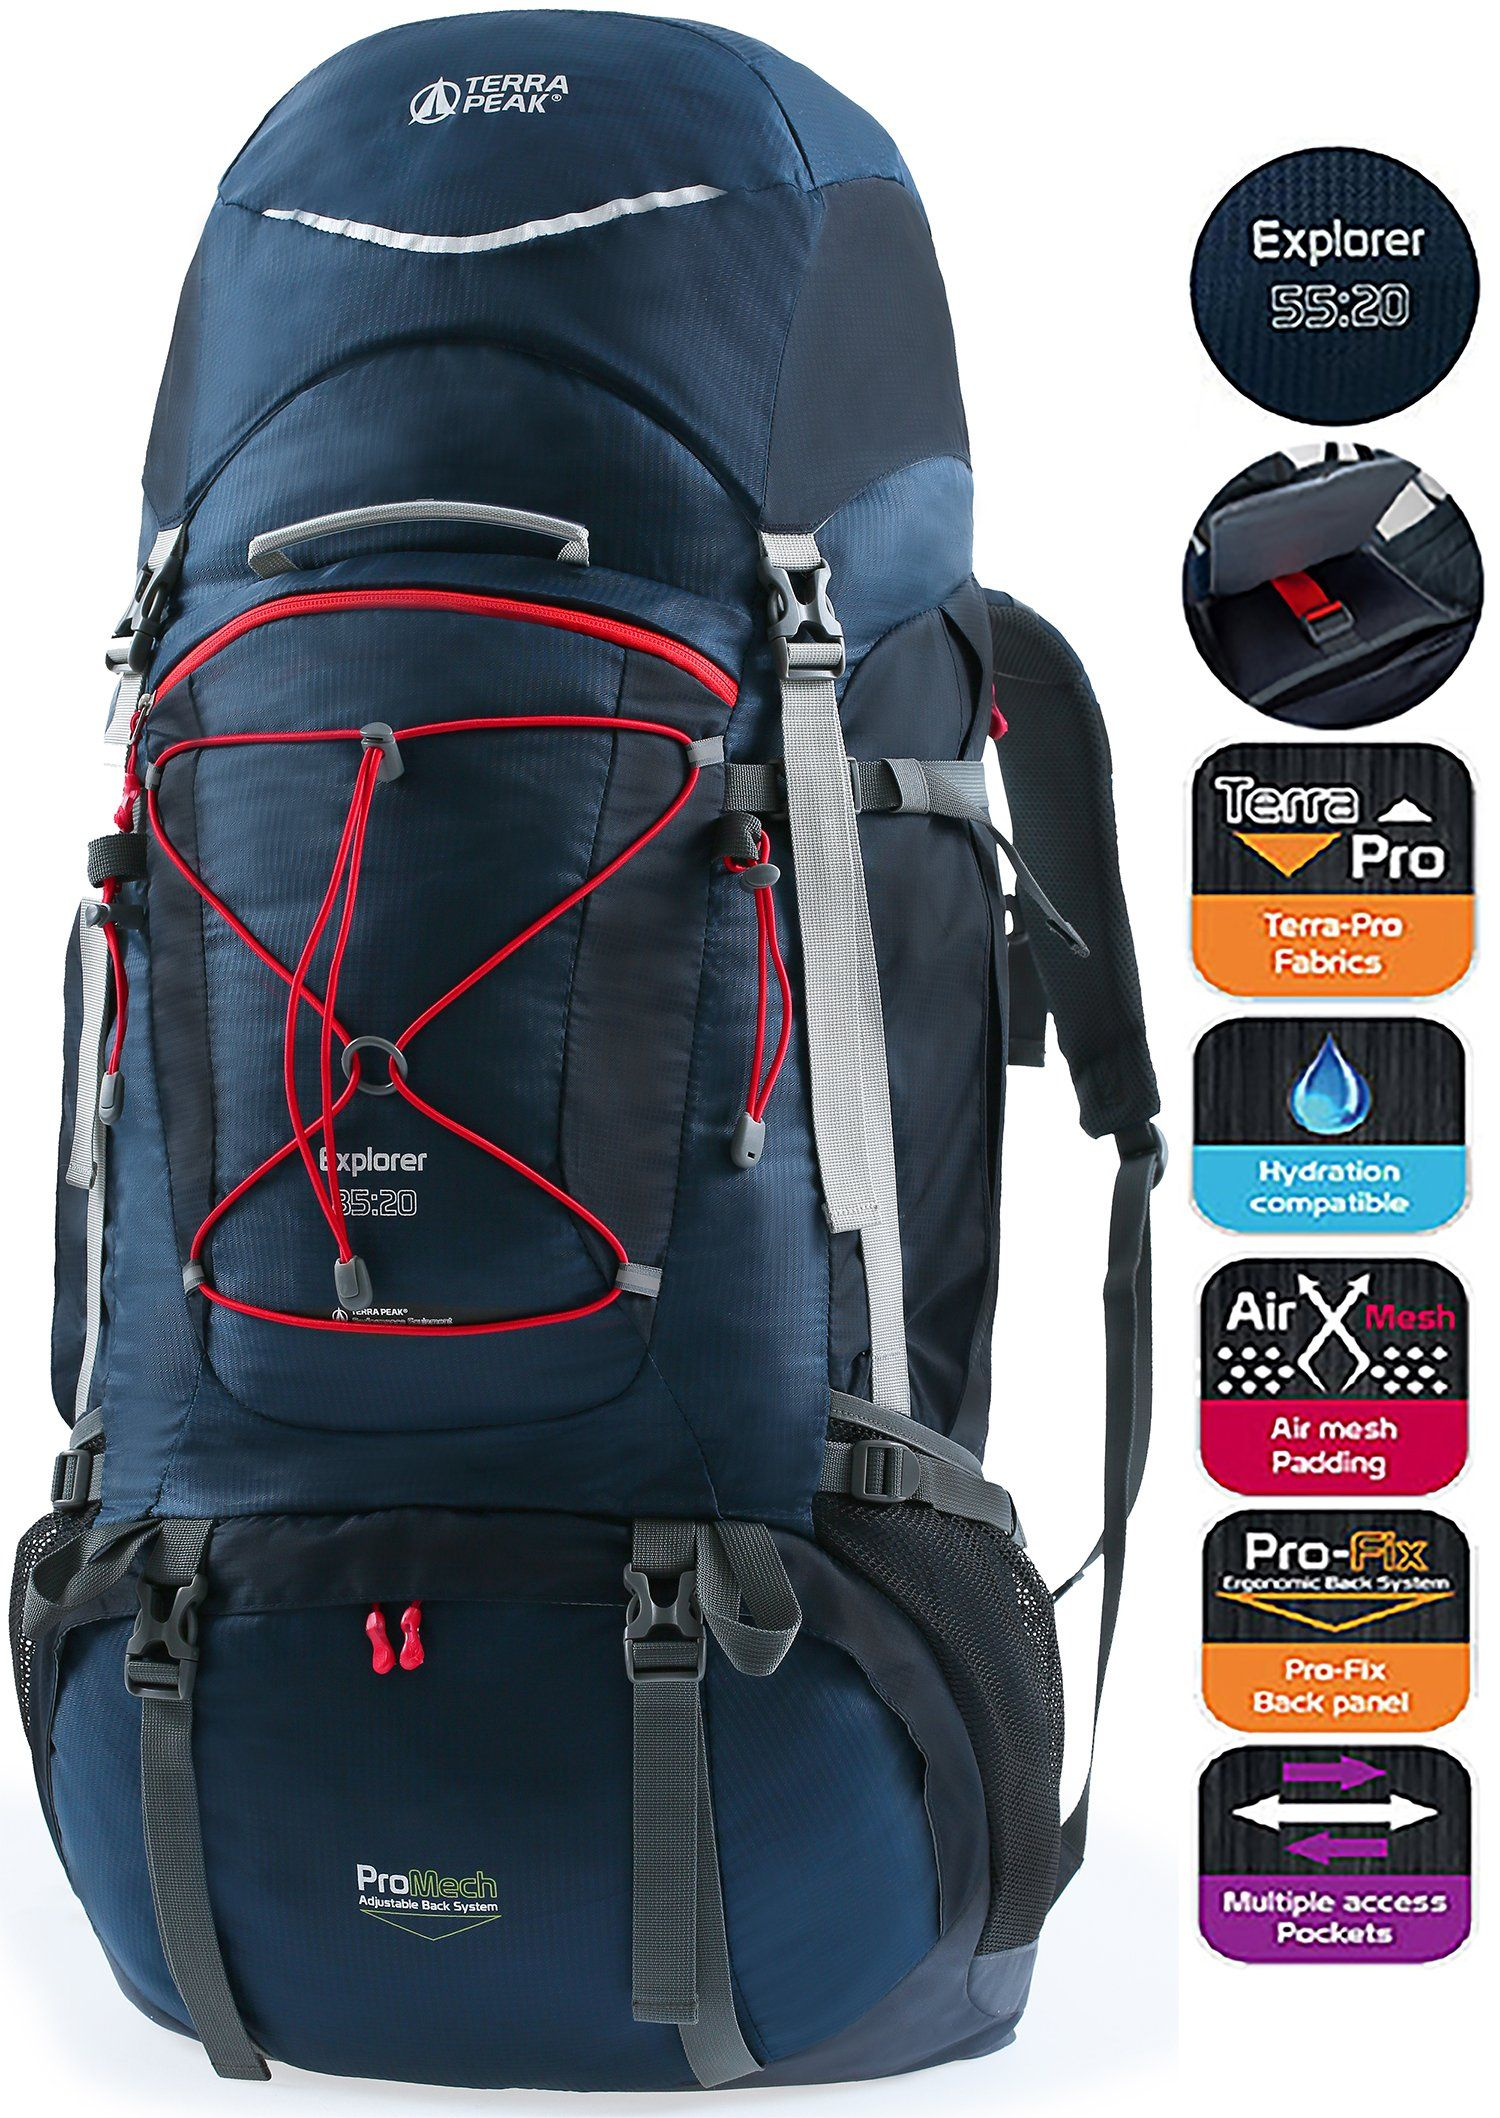 b238cf84ab7 TERRA PEAK Adjustable Hiking Backpack 55L+20L for Men Women With Free Rain  Cover Included